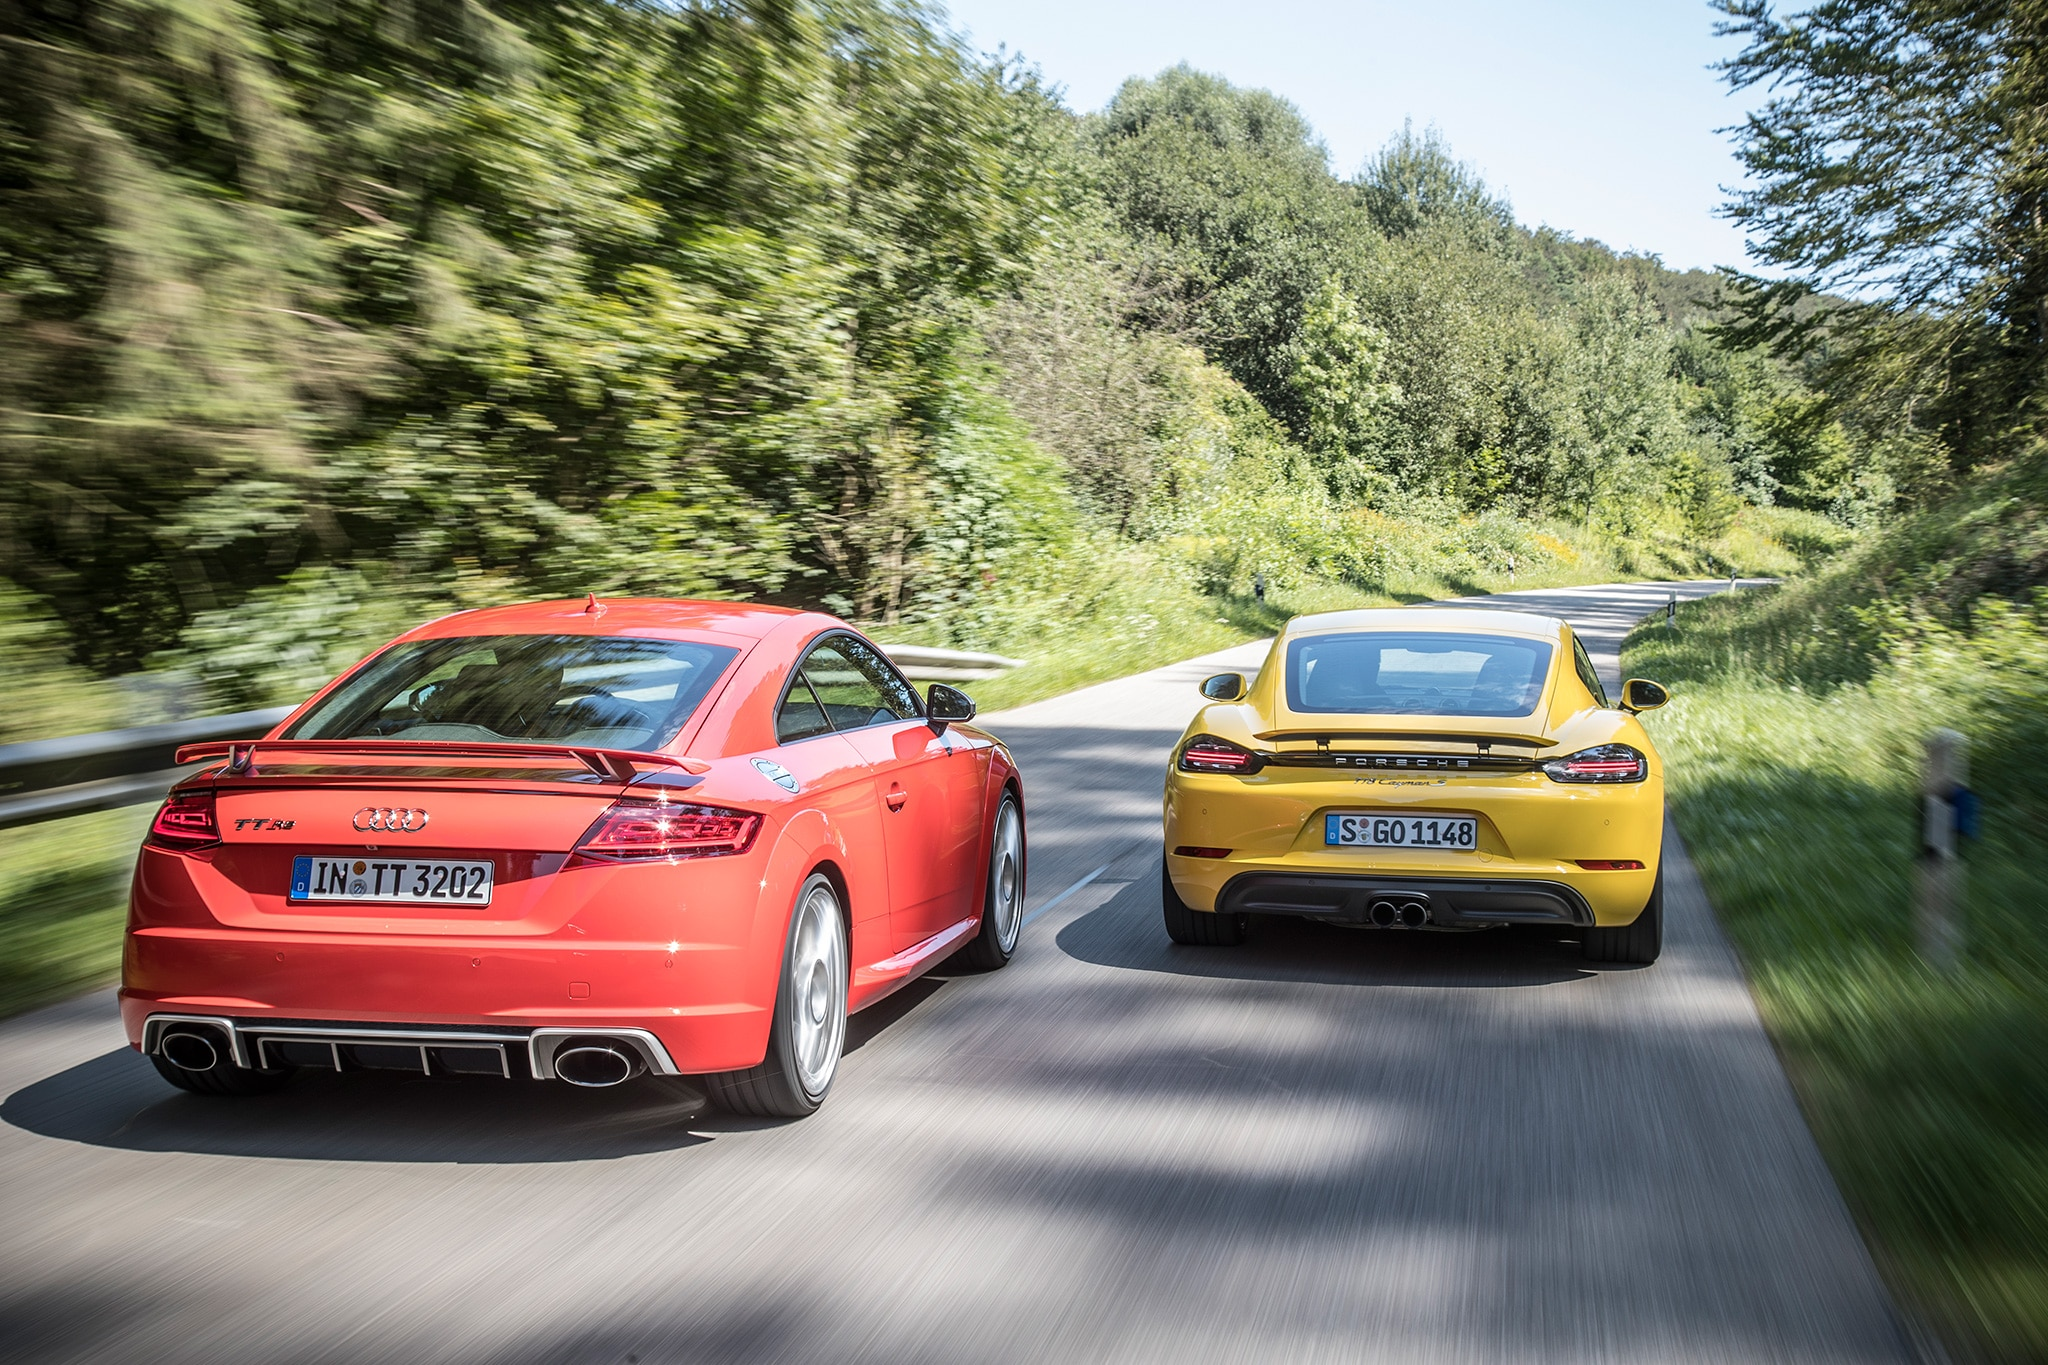 2018 Audi TT RS Vs 2017 Porsche Cayman S 09